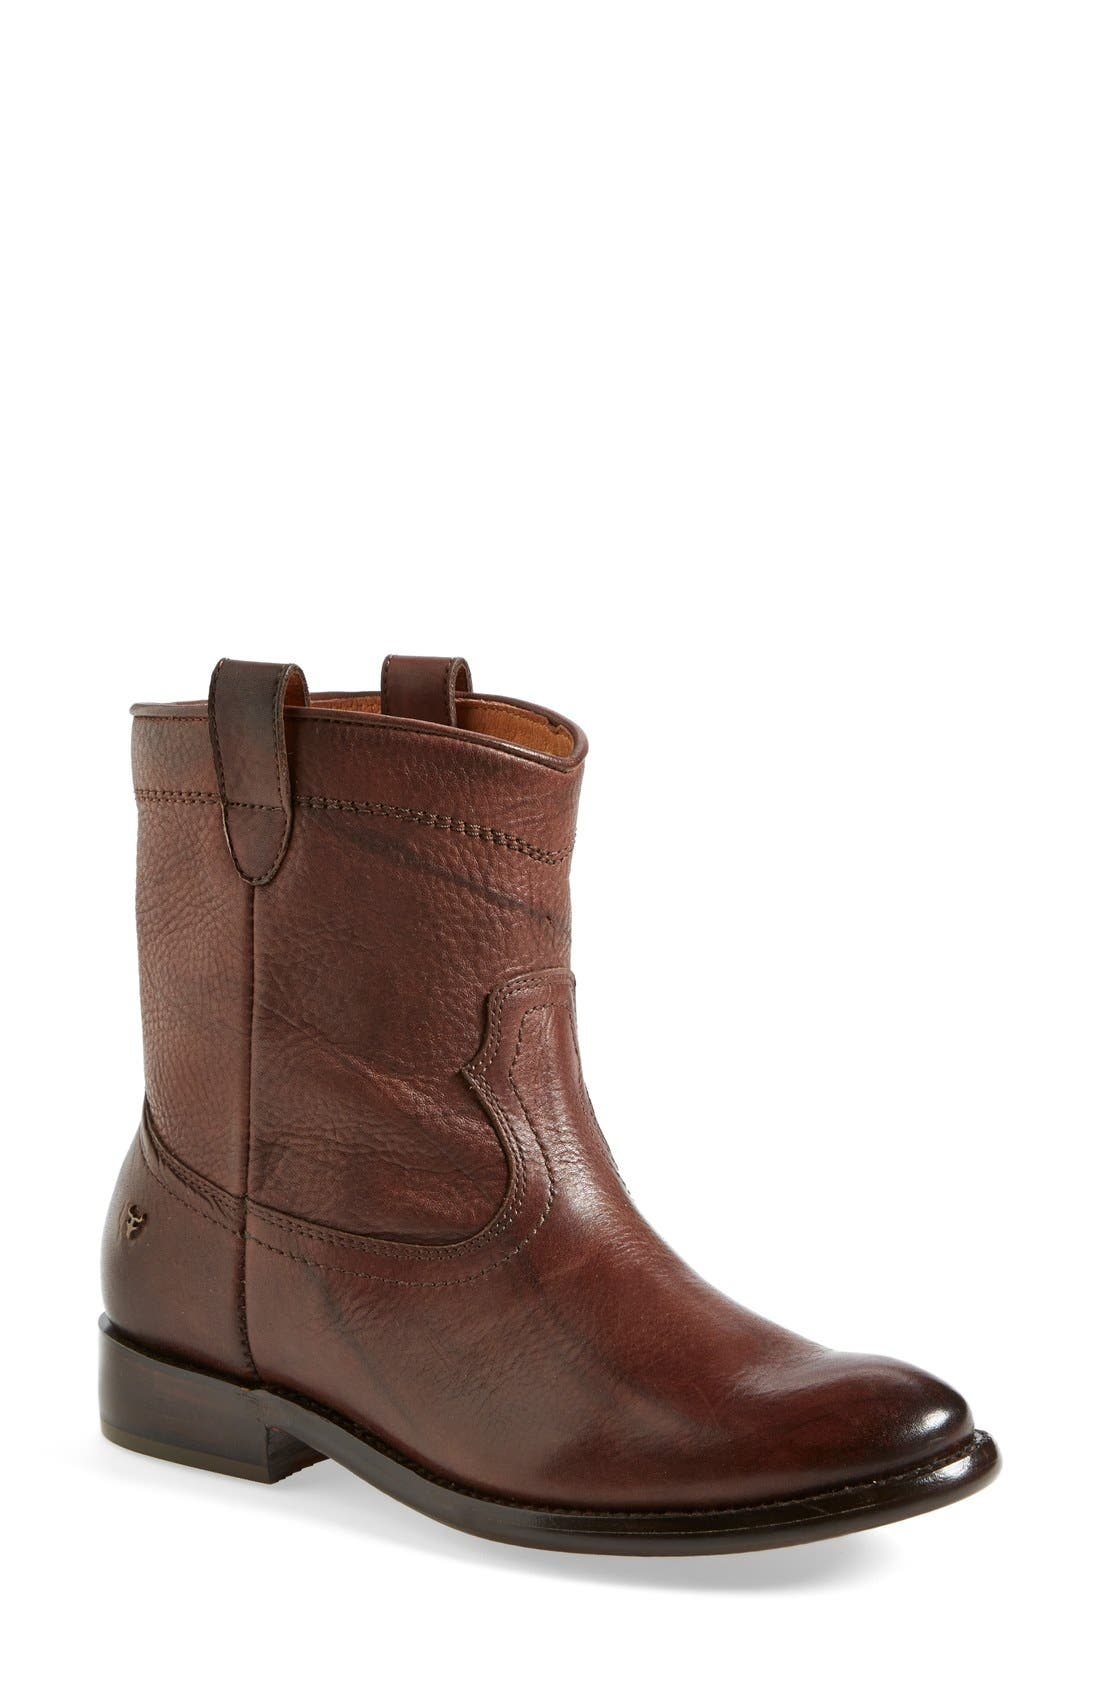 'Ada' Boot,                         Main,                         color, Dark Brown